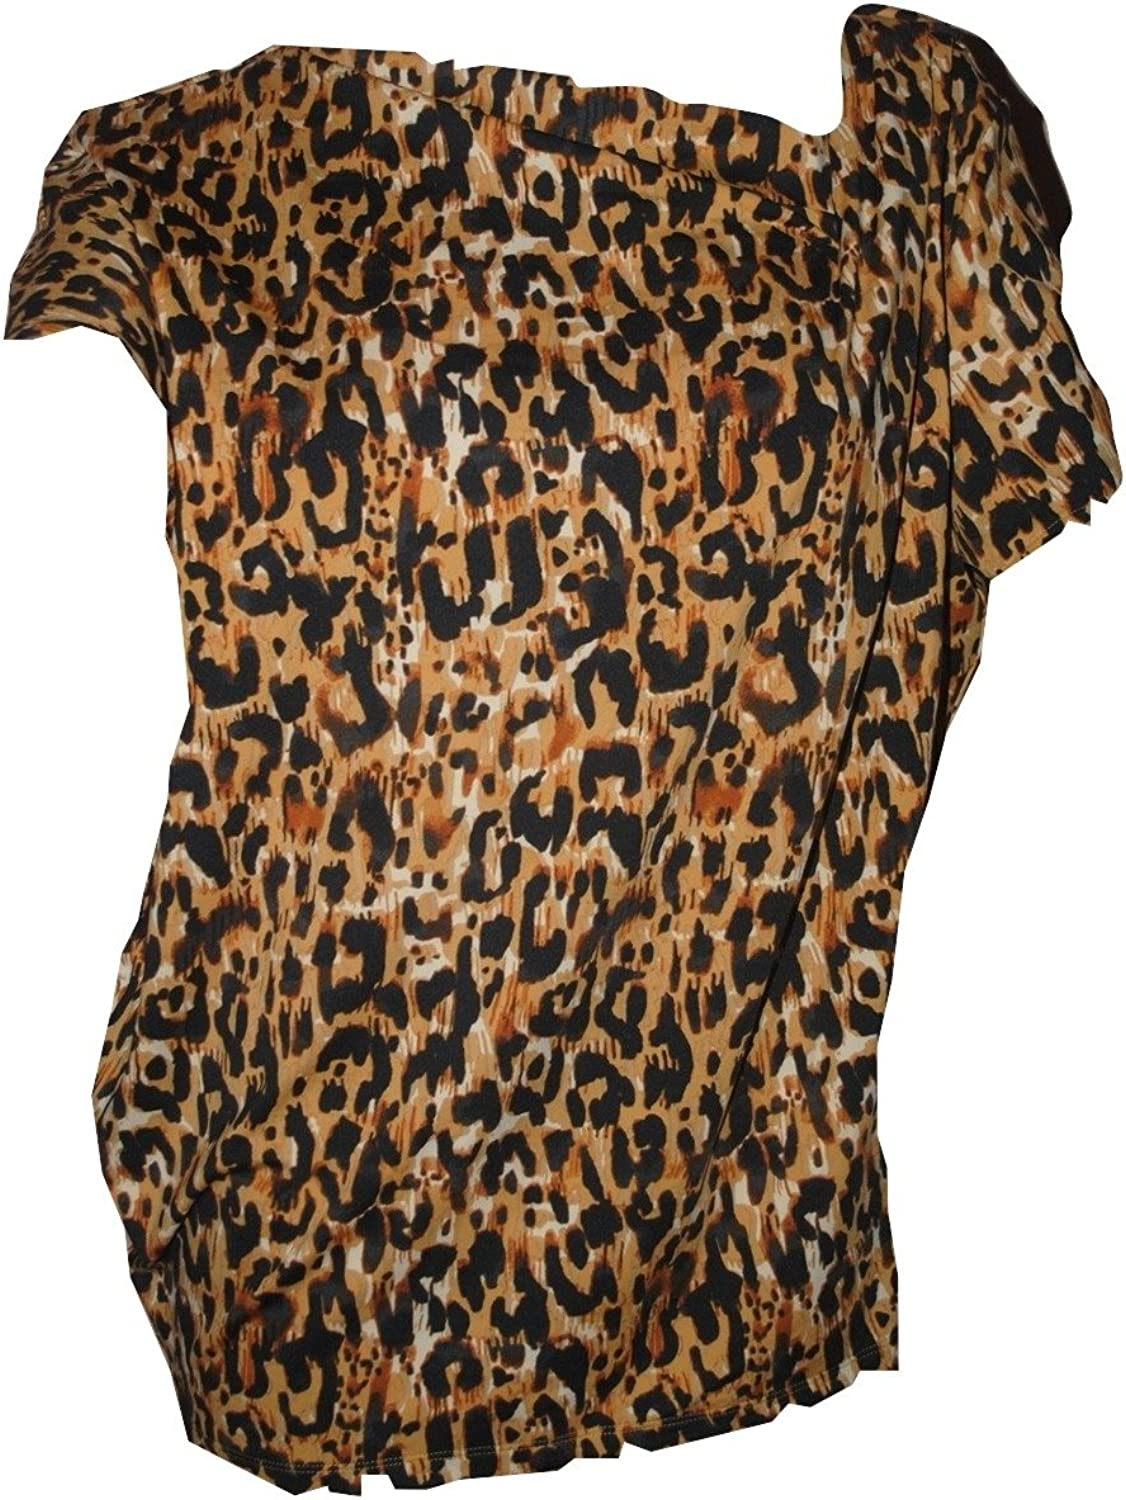 Ellen Tracy Women's Asymmetrical Leopard Print Blouse Extra Large